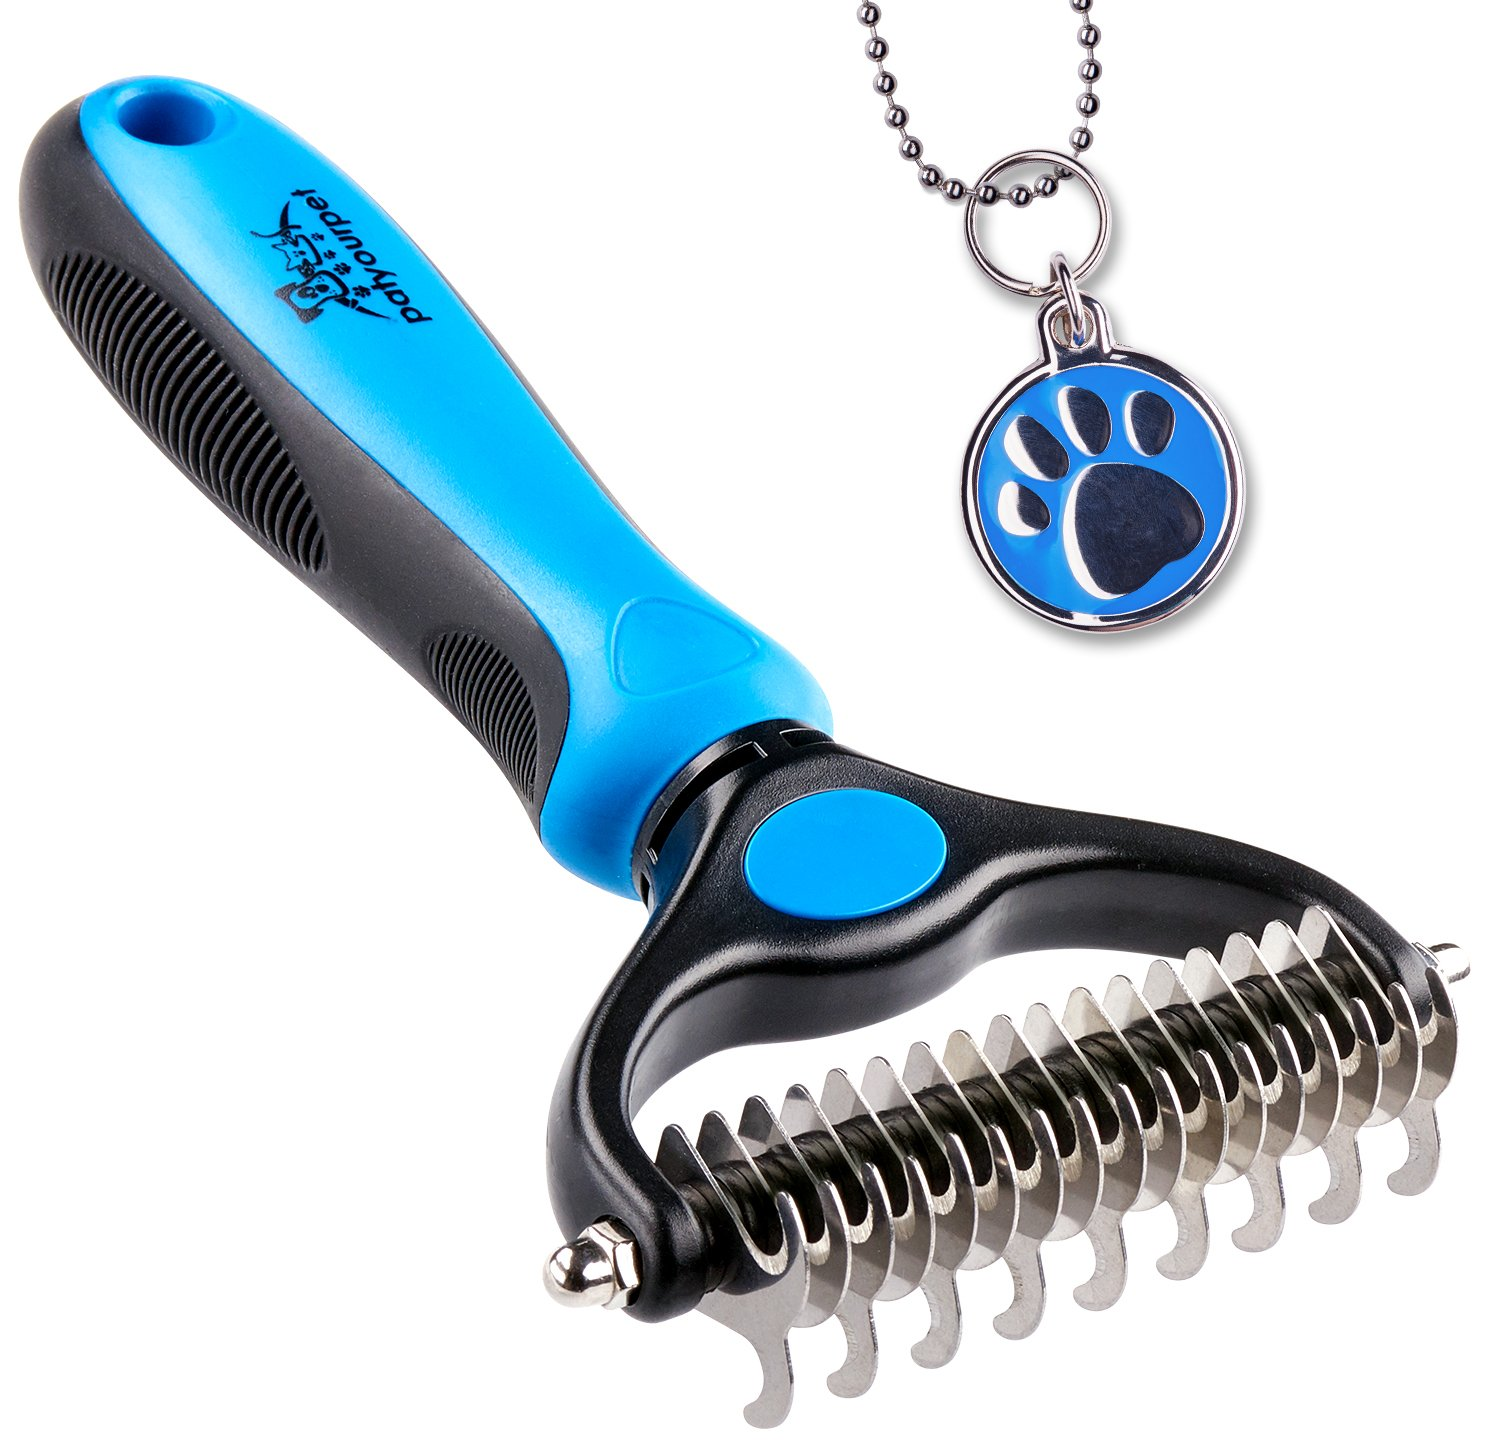 Pet Grooming Tool - 2 Sided Undercoat Rake for Cats & Dogs - Safe Dematting Comb for Easy Mats & Tangles Removing - No More Nasty Shedding and Flying Hair by Pat Your Pet